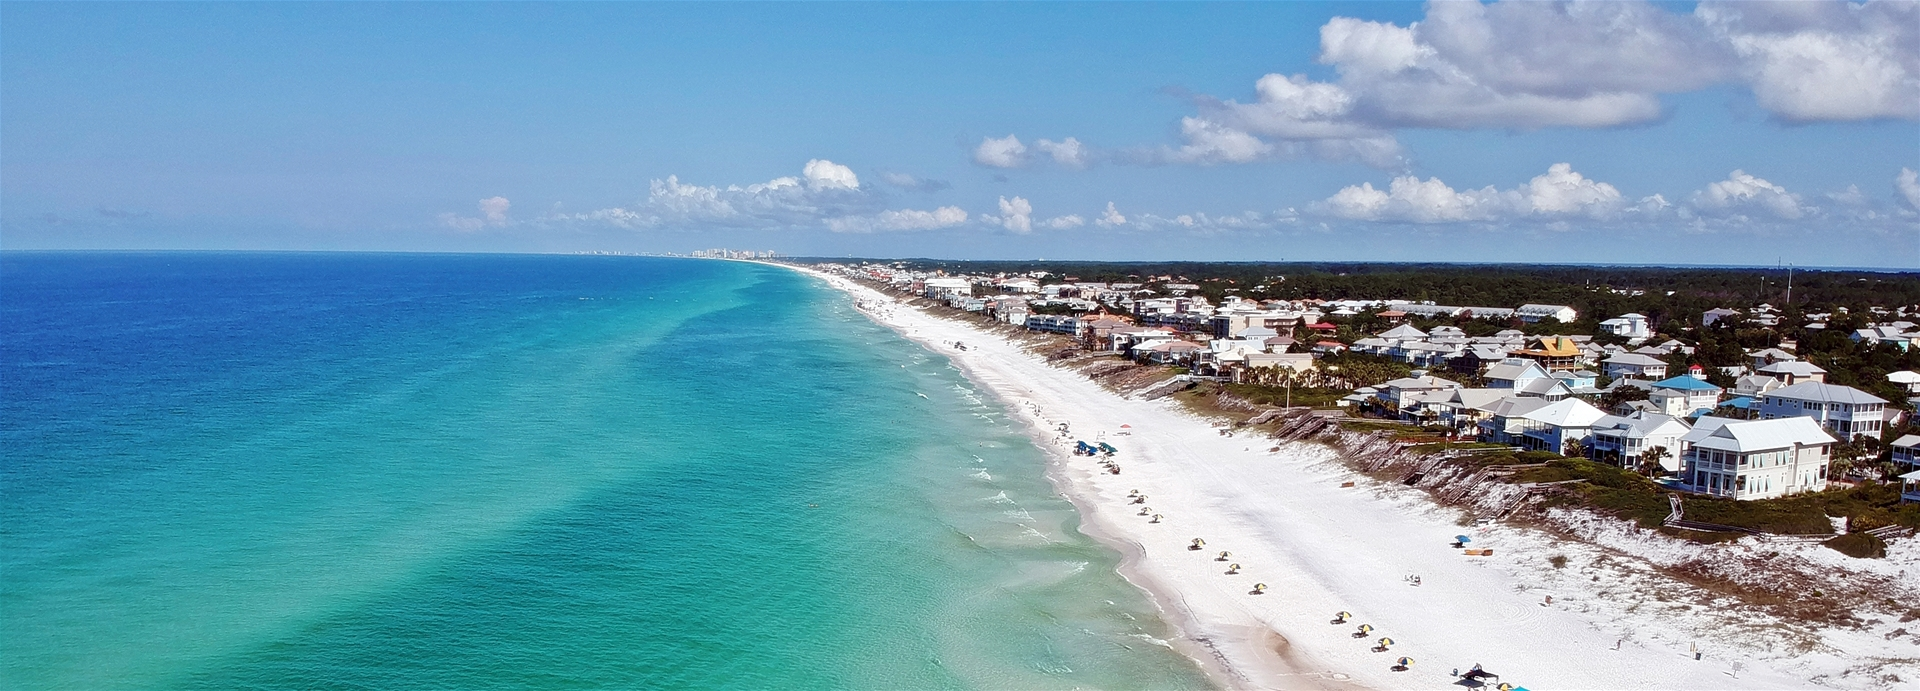 Grayton Beach, Gulf Trace – Bula House,30a rentals, 30a beaches, 30a vacation rentals, 30a beach rentals